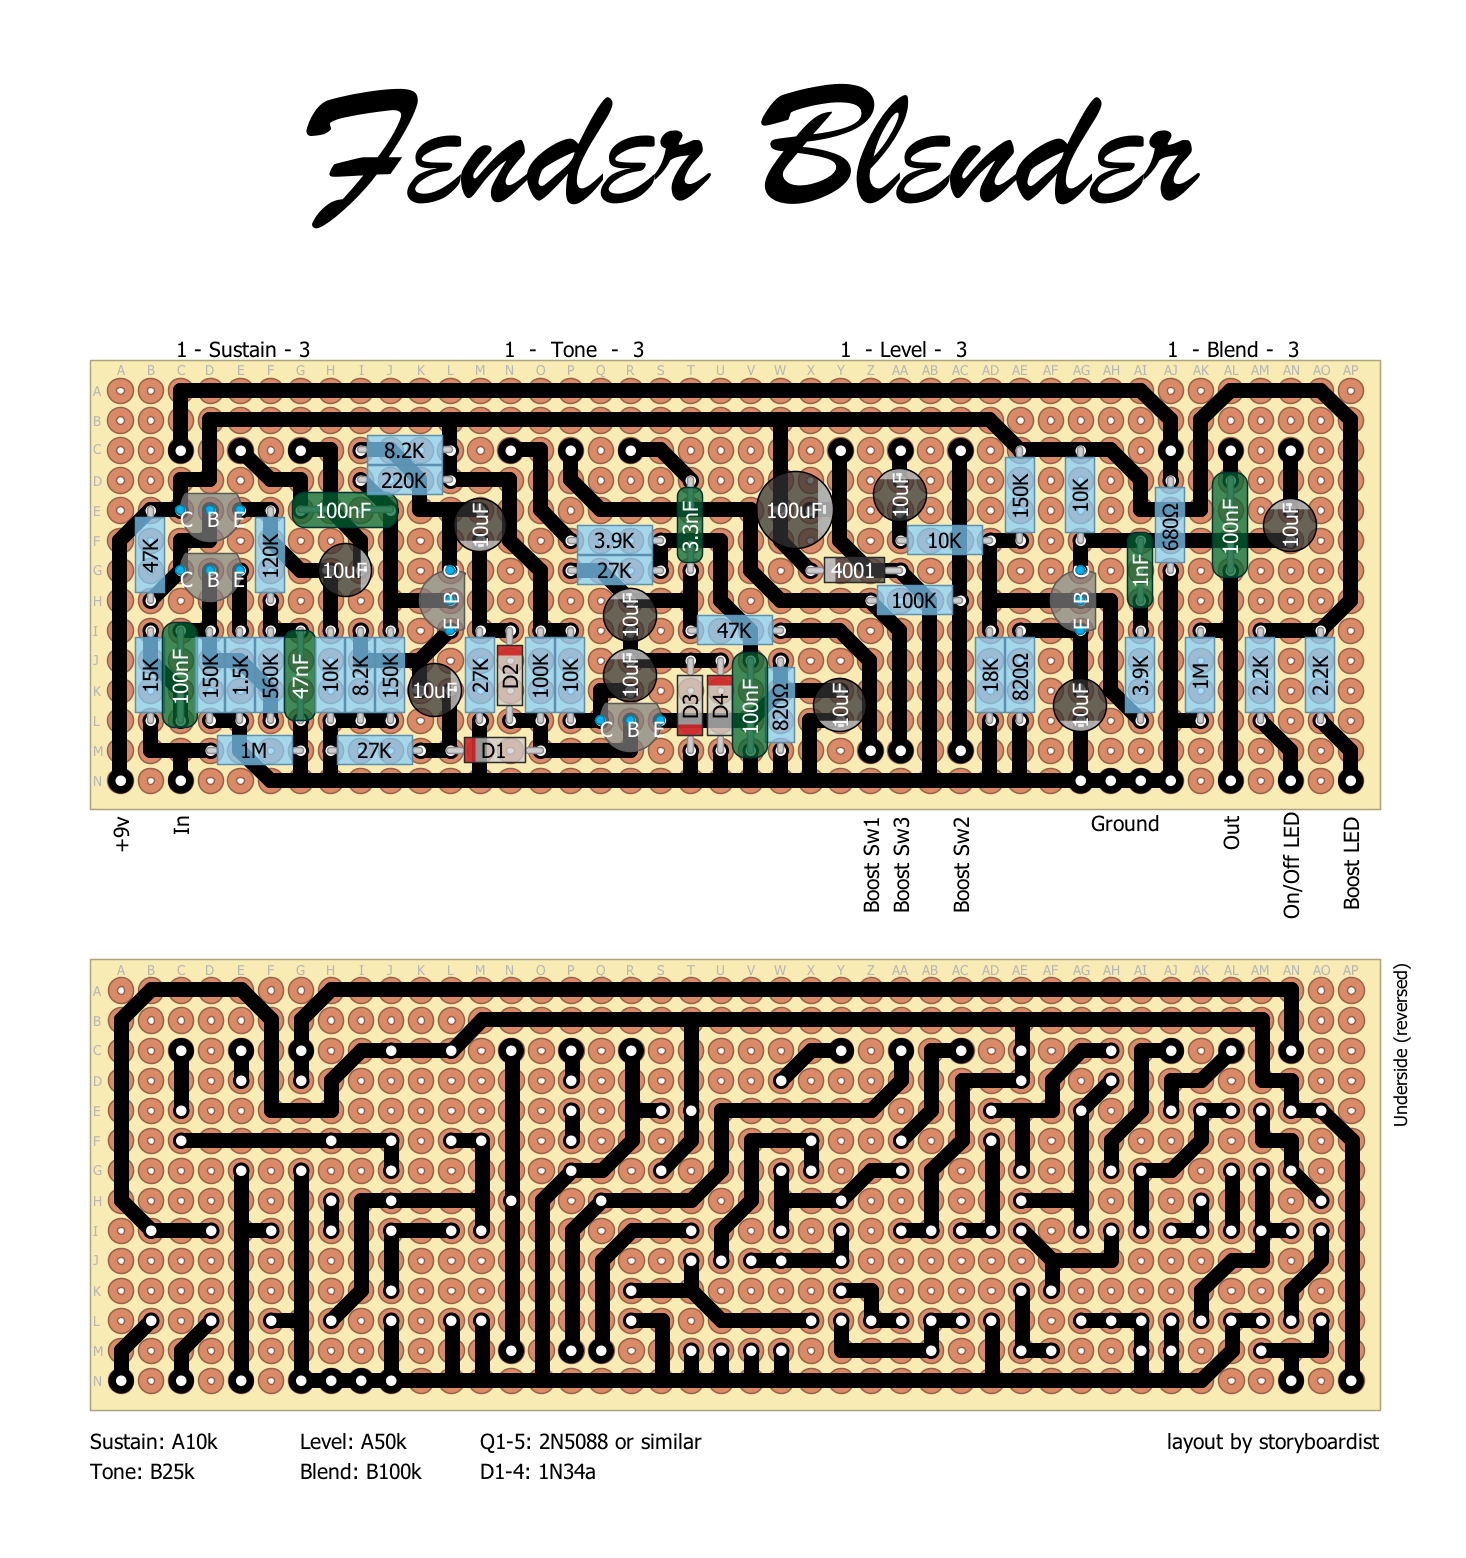 Fender Blender Fuzz Pedal Schematic Explained Wiring Diagrams Perf And Pcb Effects Layouts Simple Circuit